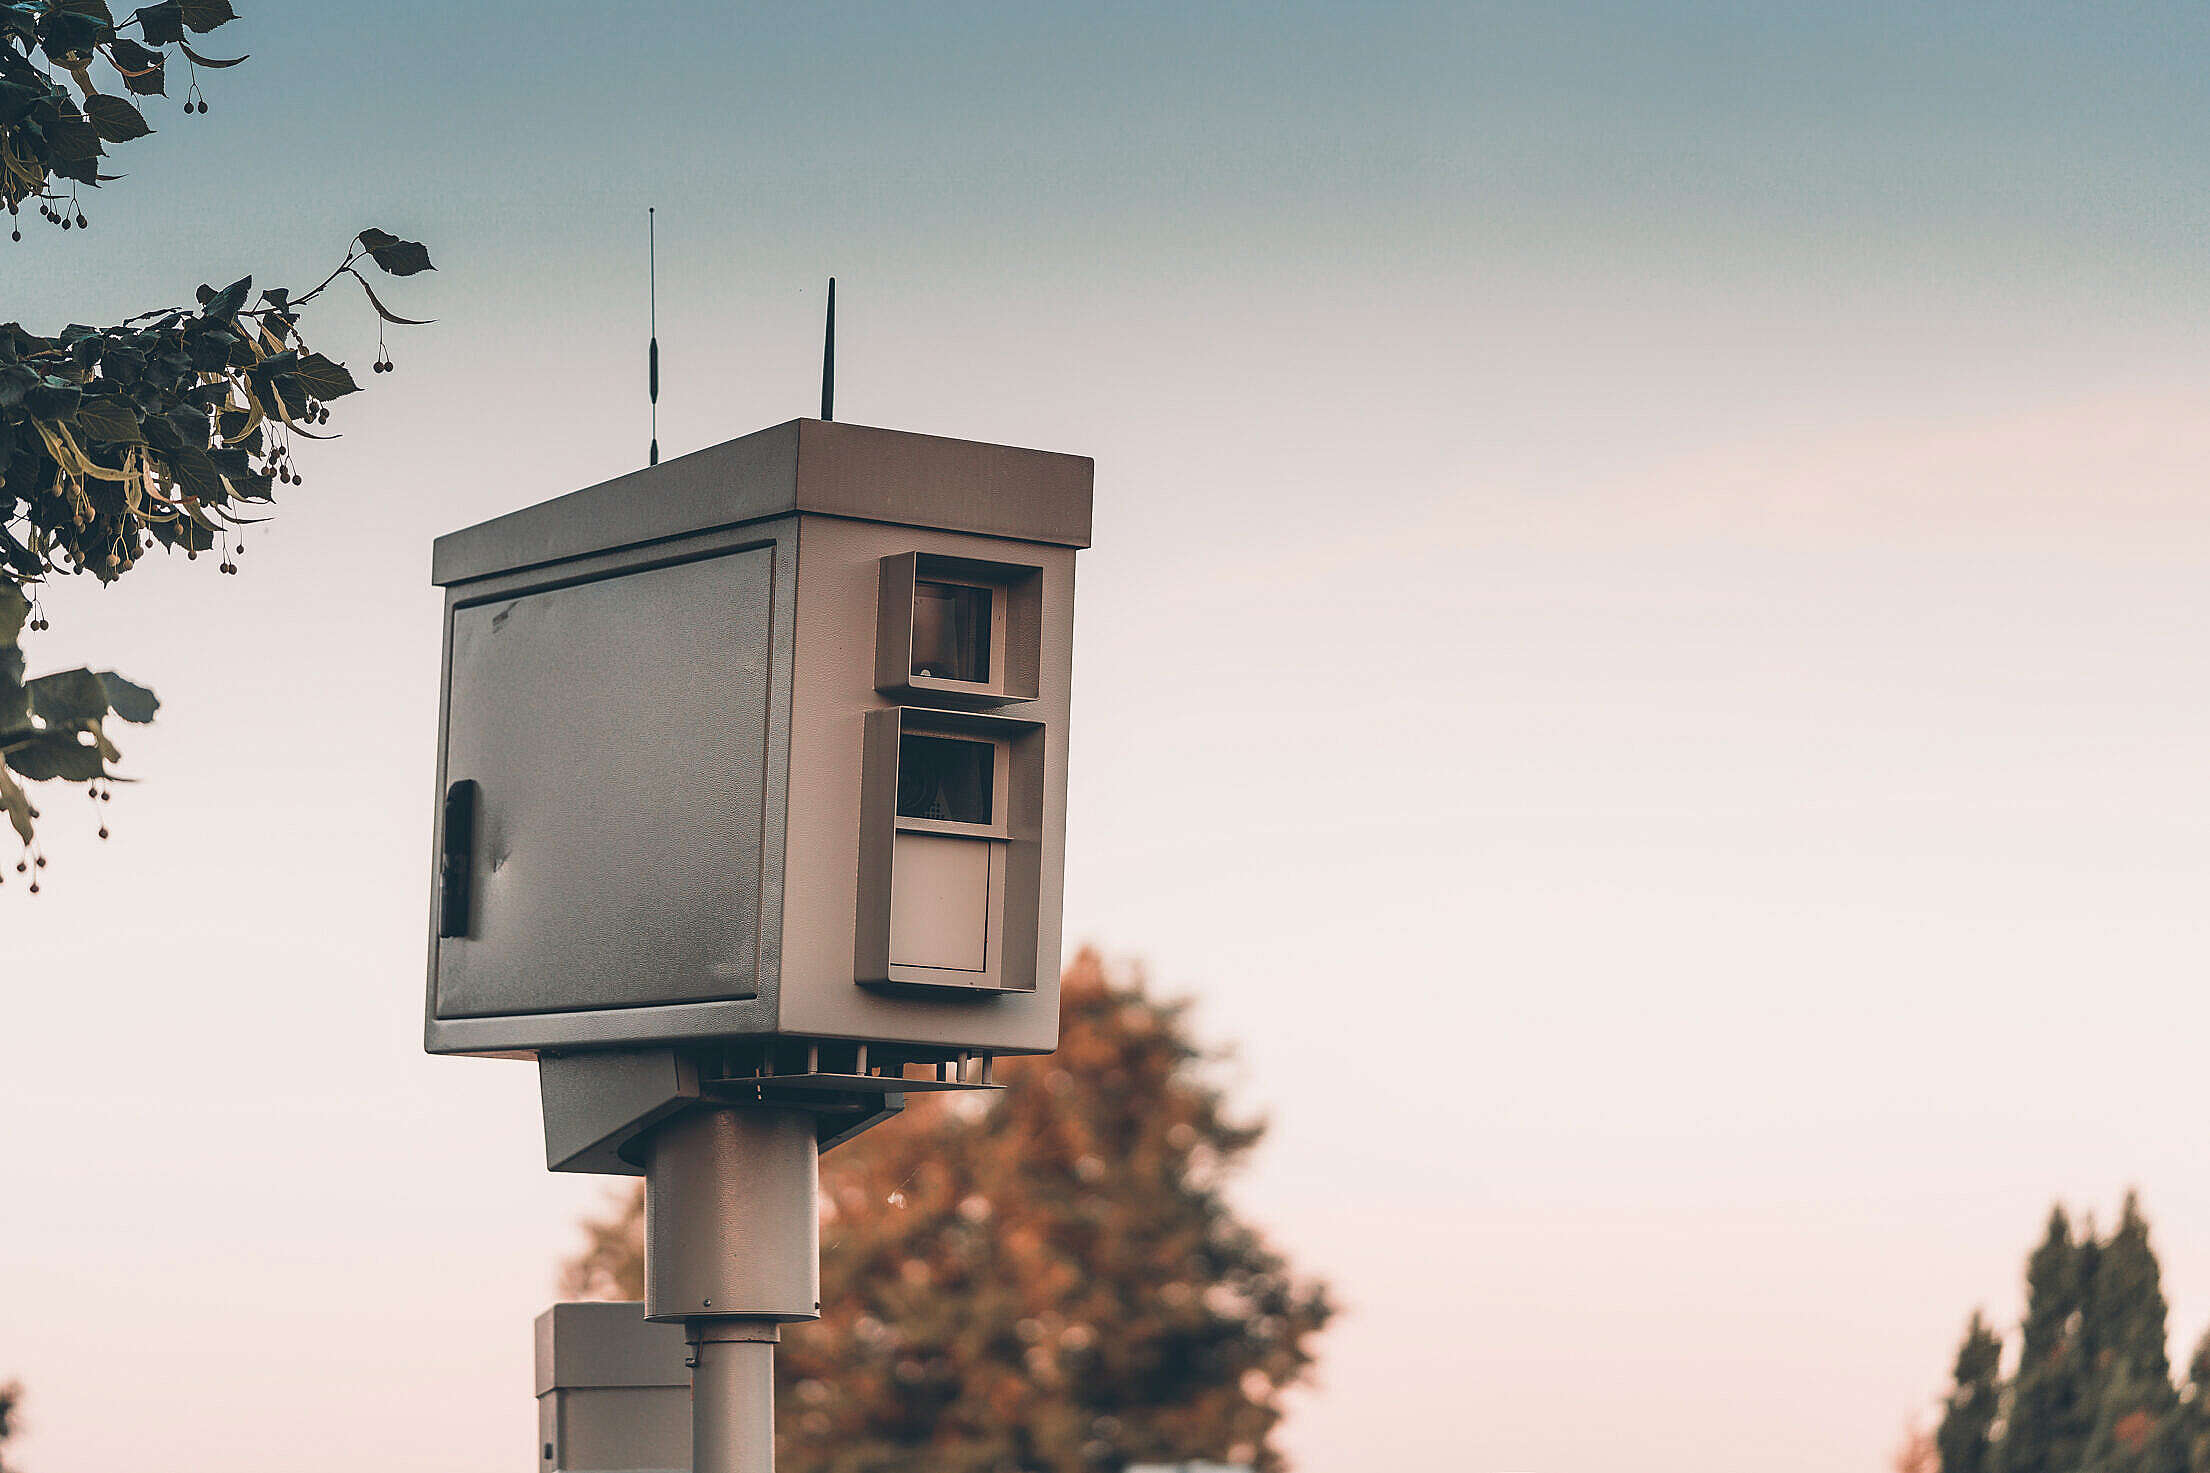 Automated Speed Enforcement Camera Radar in City Free Stock Photo